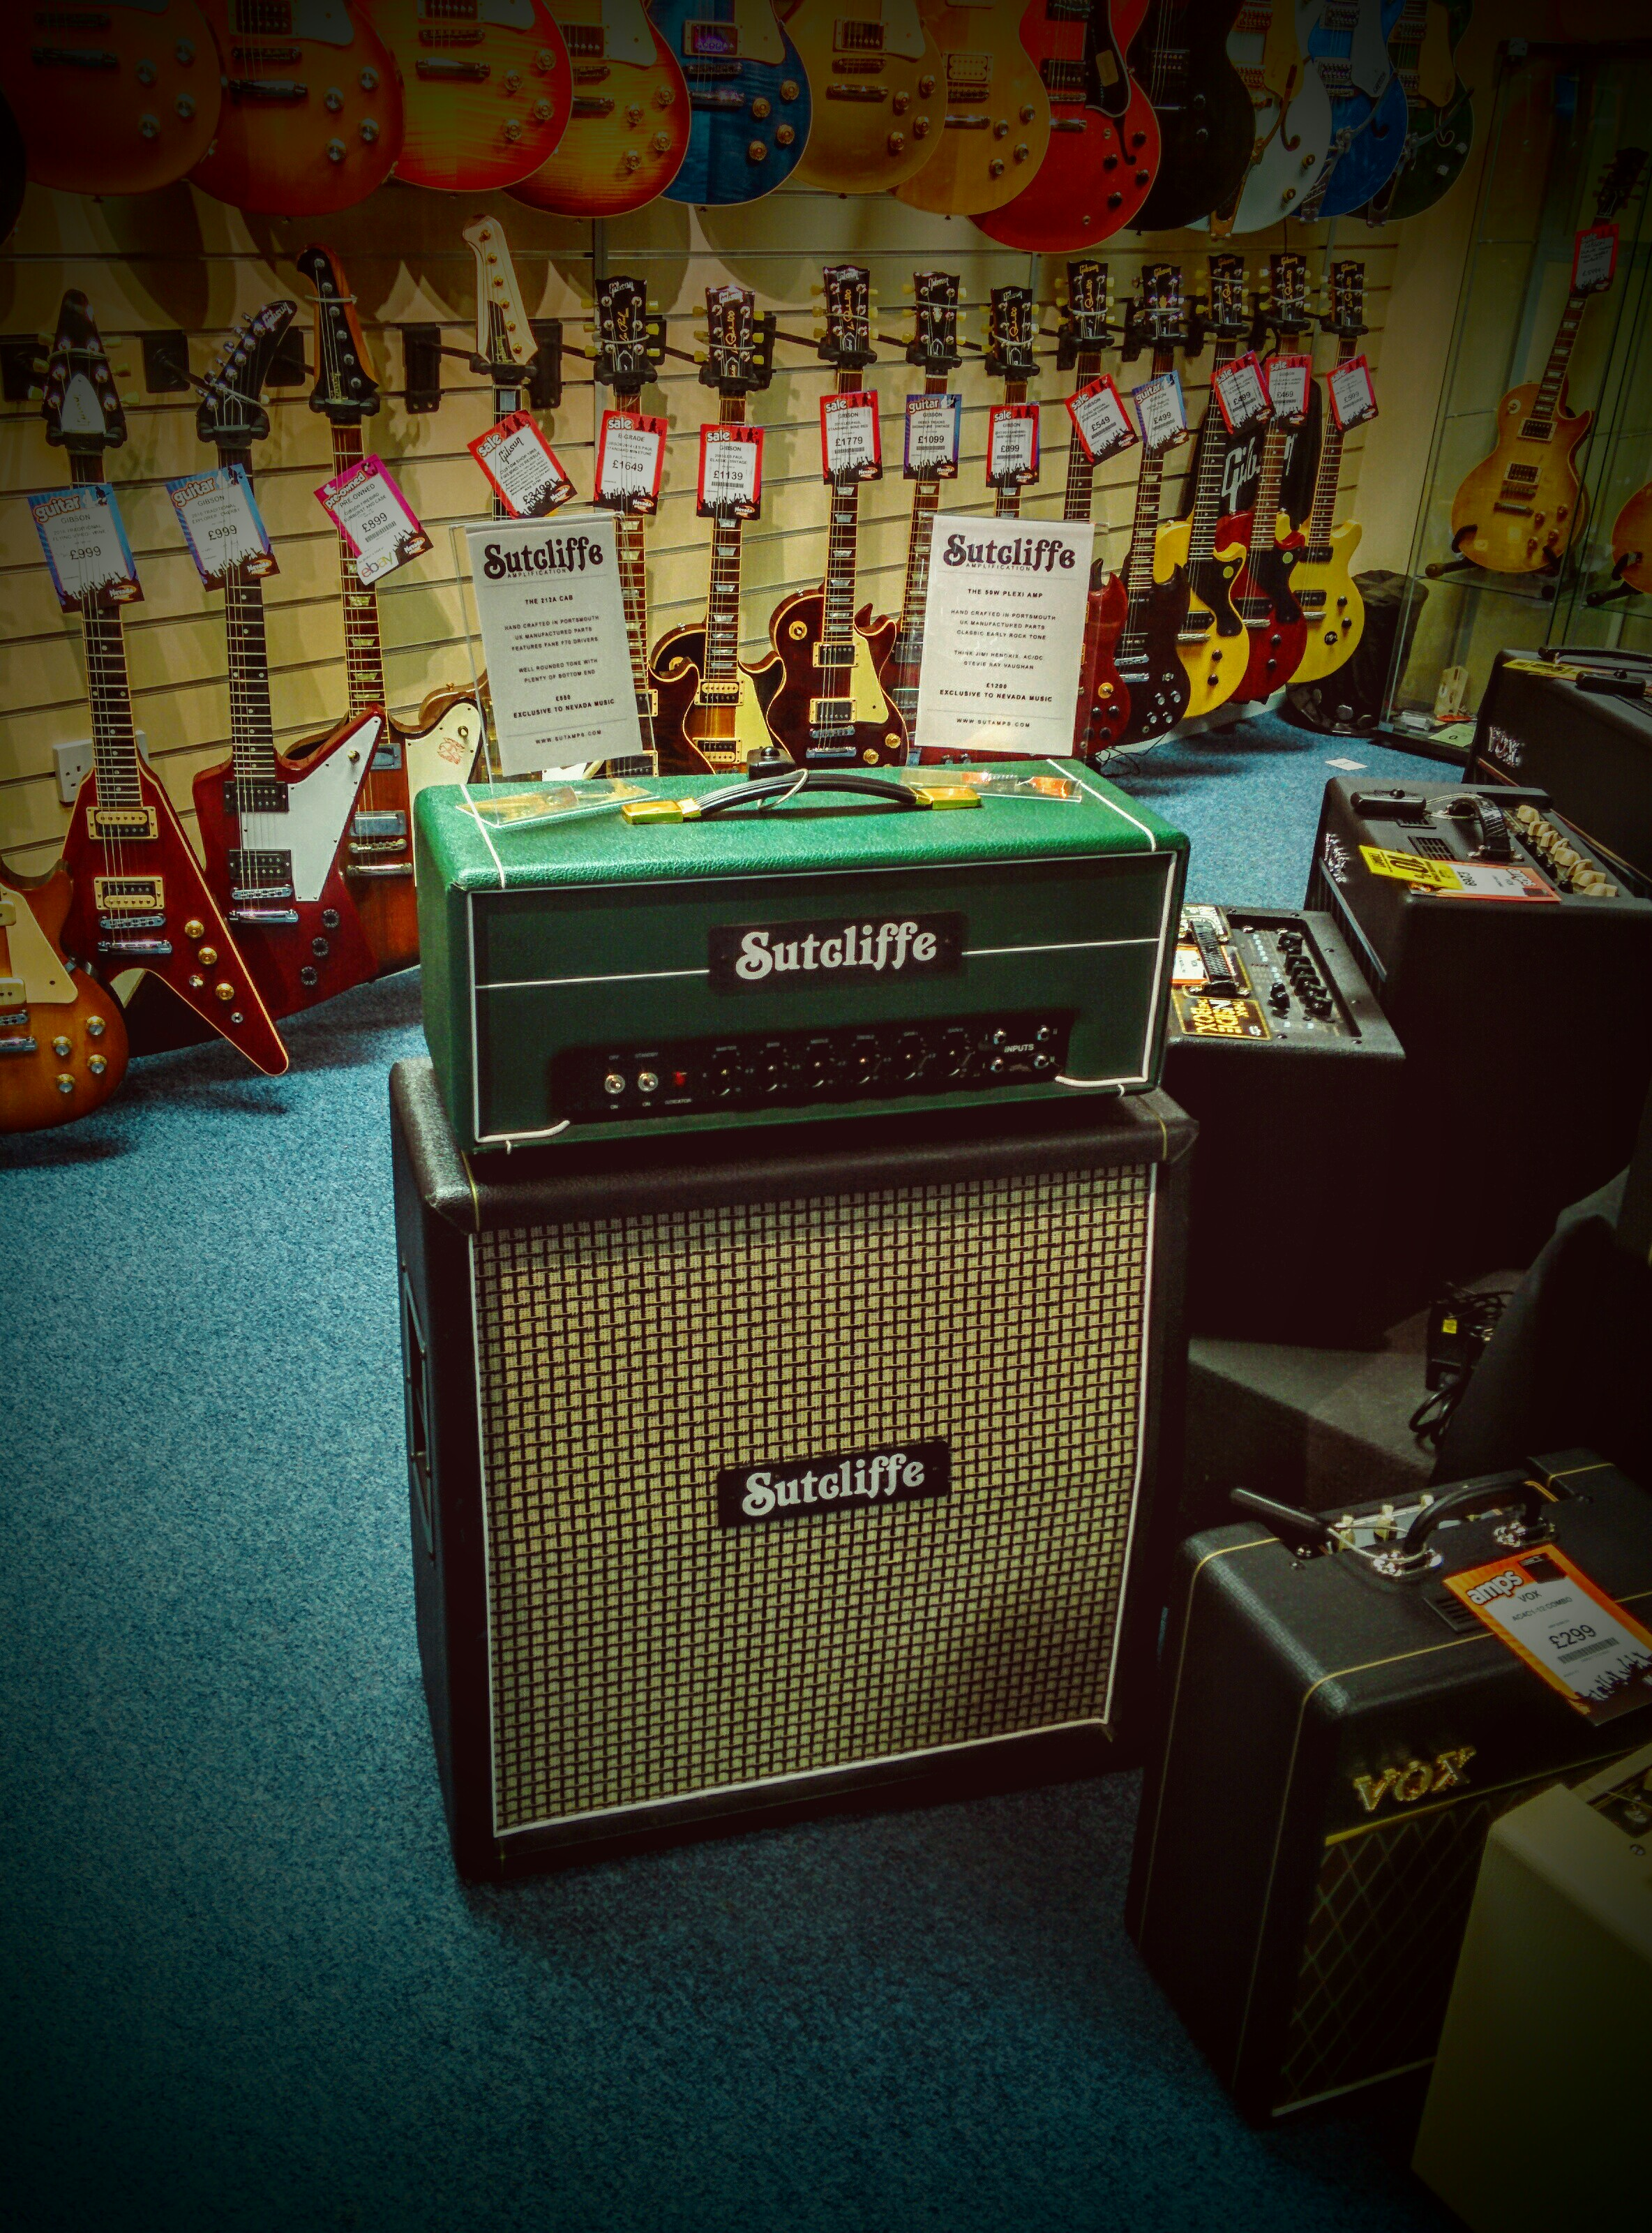 Sutcliffe Amplification available to test at Nevada Music in Portsmouth